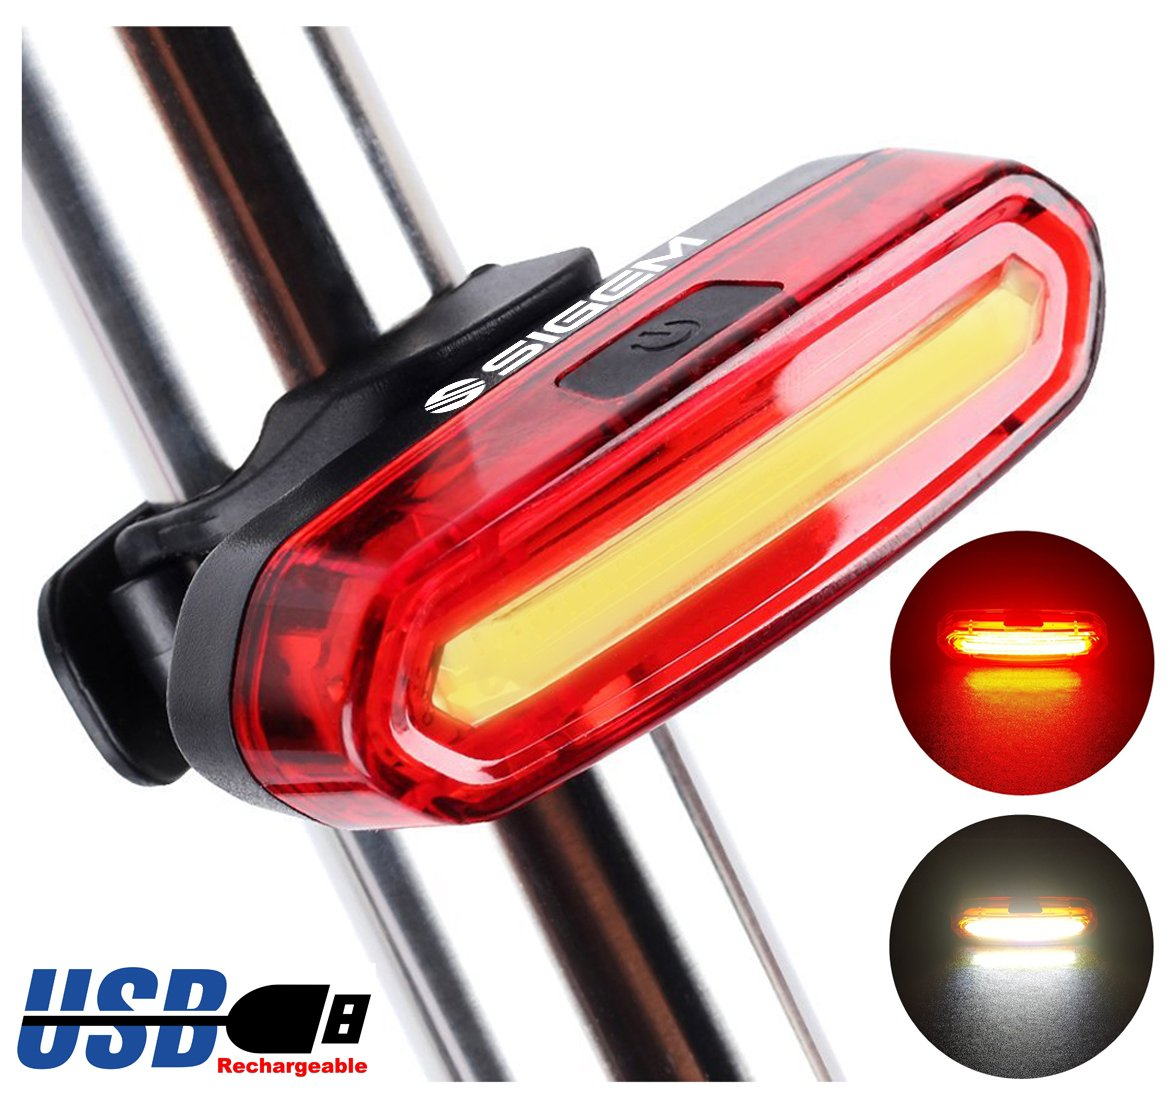 SIGEM Bike Tail Light, Headlight, Ultra Bright & USB Rechargeable, Bicycle Flashing Rear taillight, LED Safety Warning Strobe Head Light, Also for Helmet and Backpack 120 Lumens